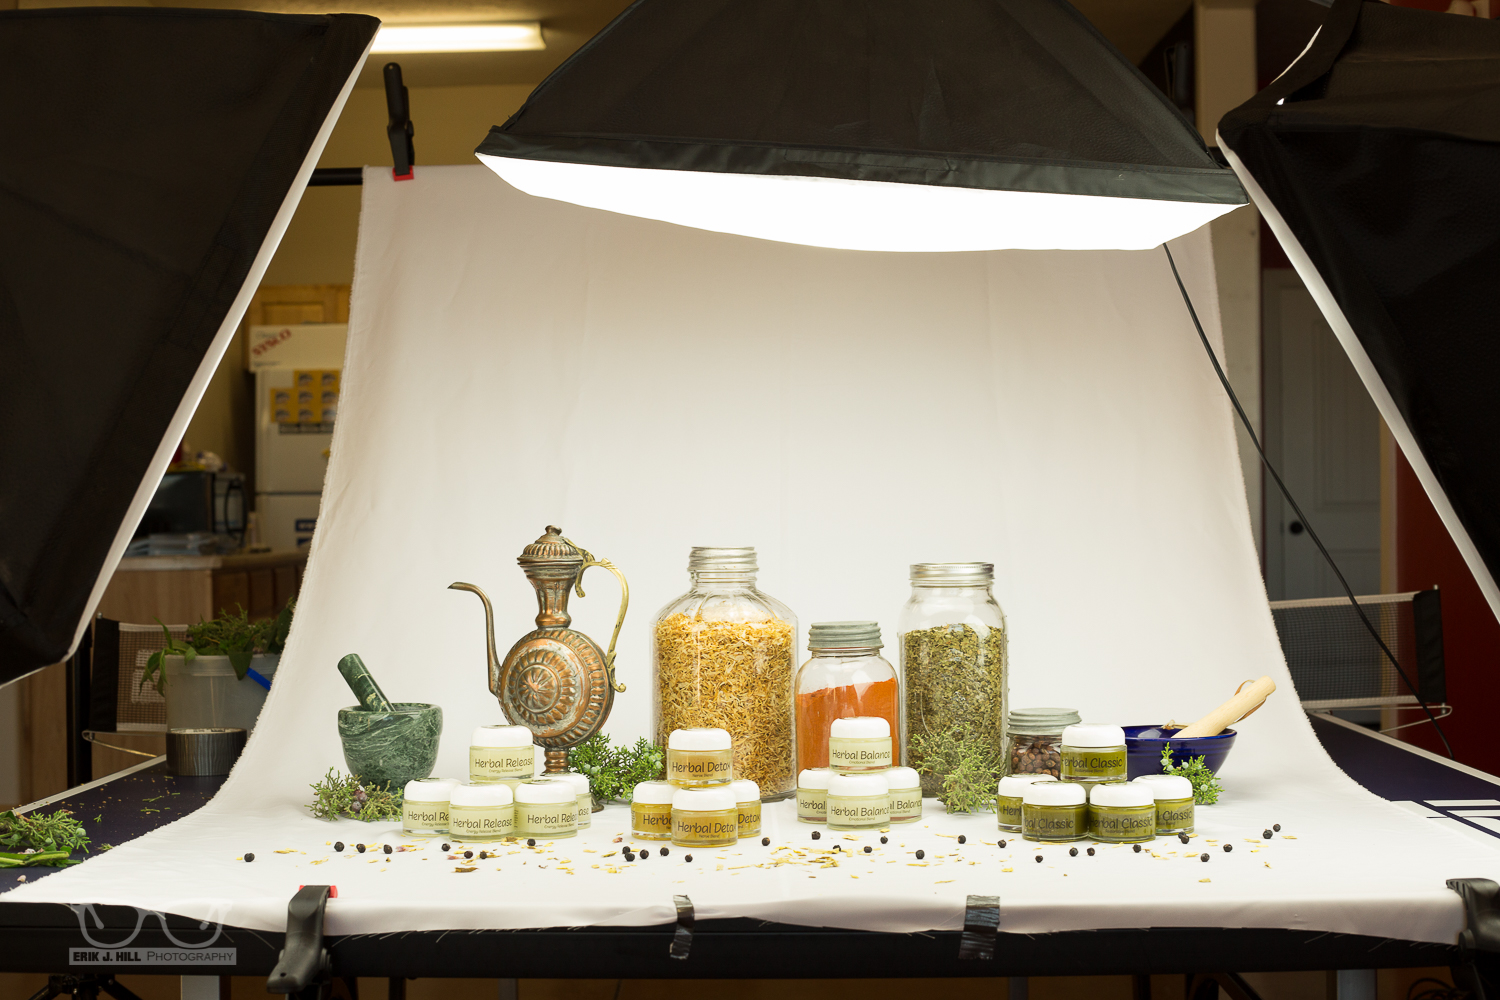 Purity Natural Elements - Erik J. Hill Photography for Lamp Product Photography  45gtk